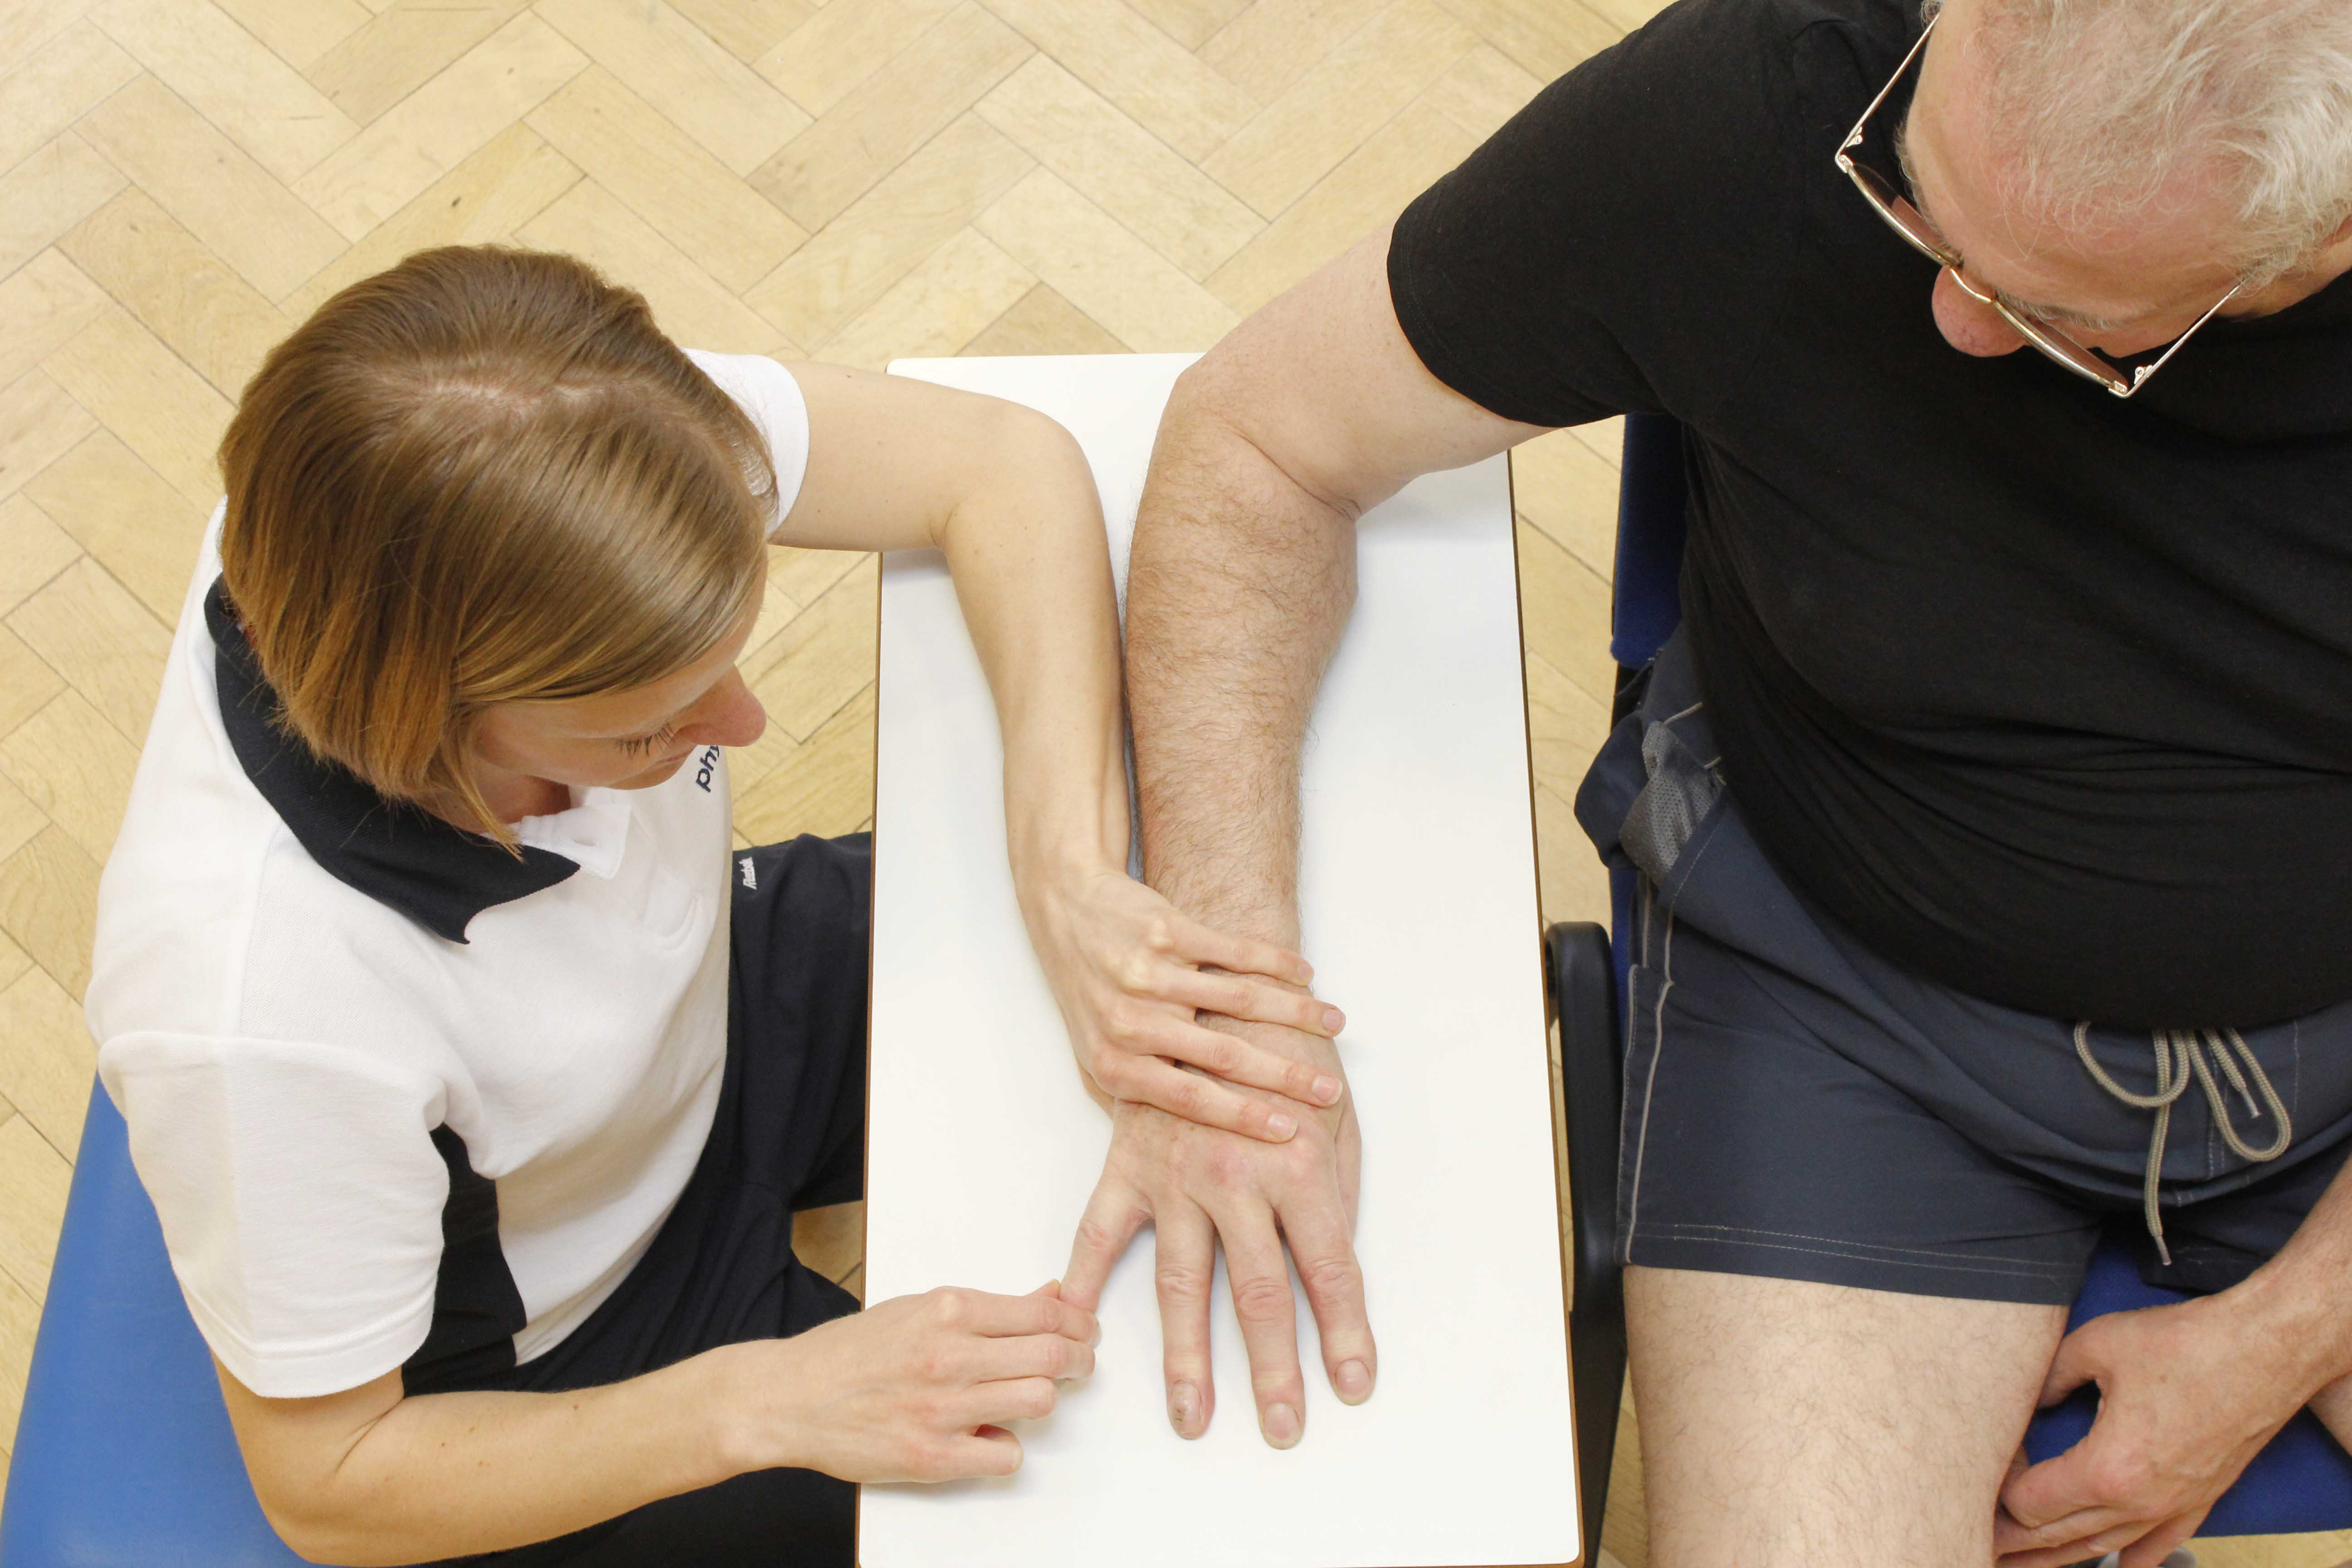 Sensory stimulation exercises performed by specialist physiotherapist to address diminished sensation and numbness